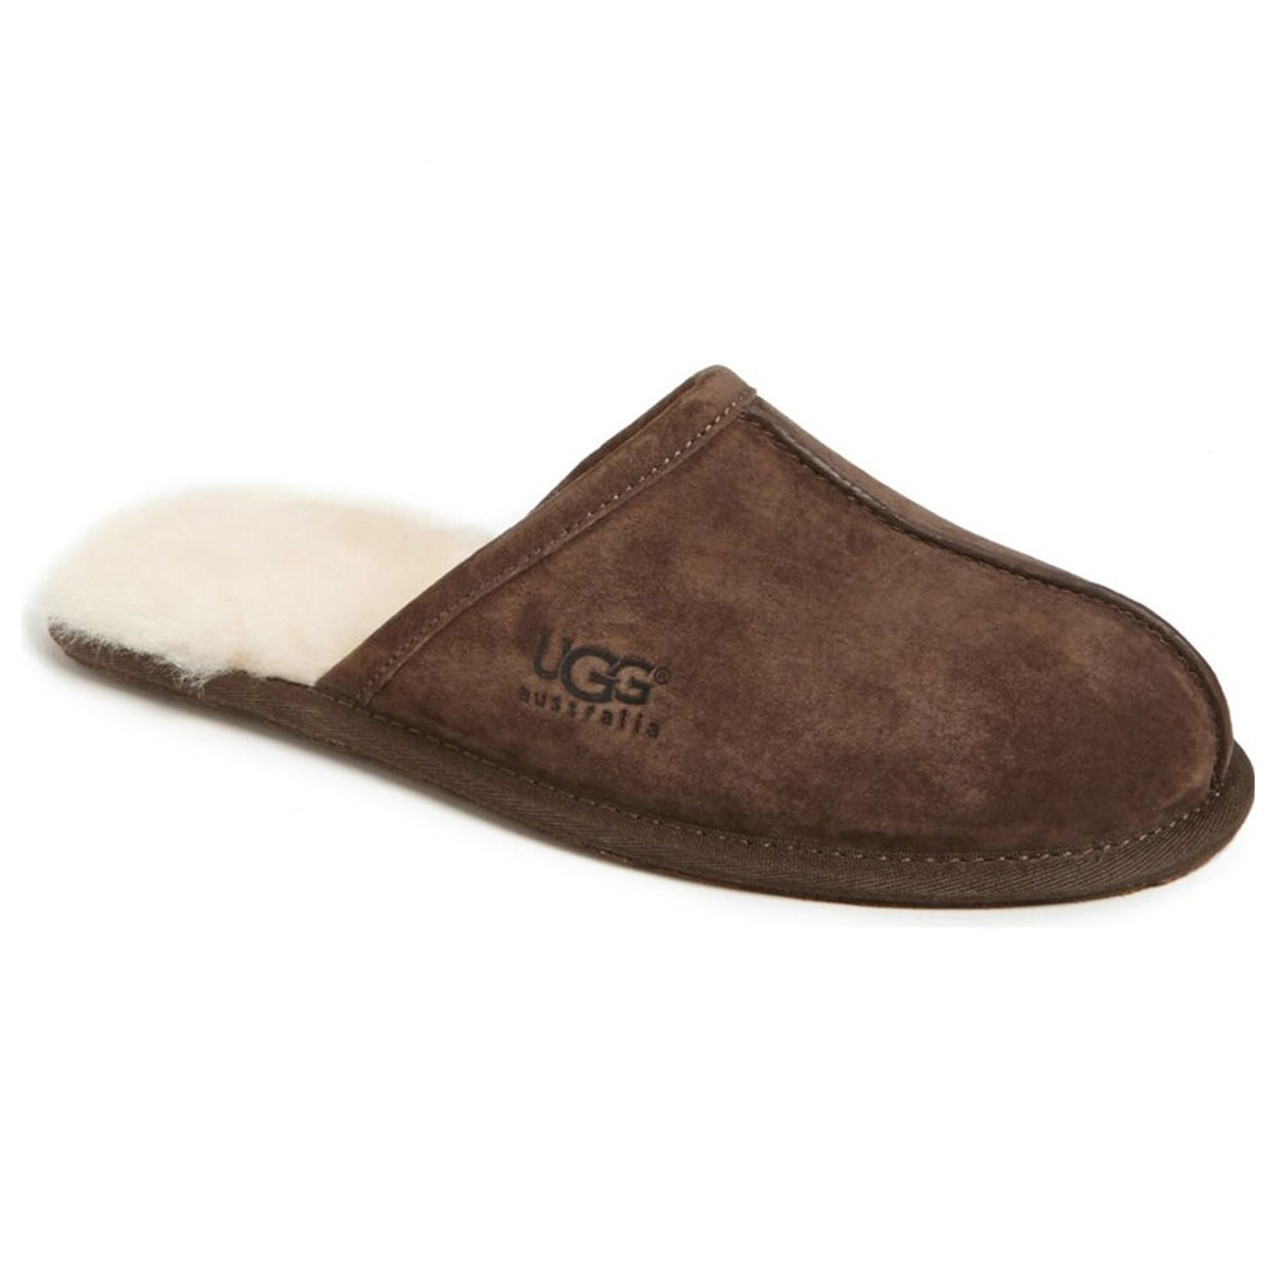 54feb0a33c22 UGG Men s Scuff Slipper Espresso - Shop now   Shoolu.com